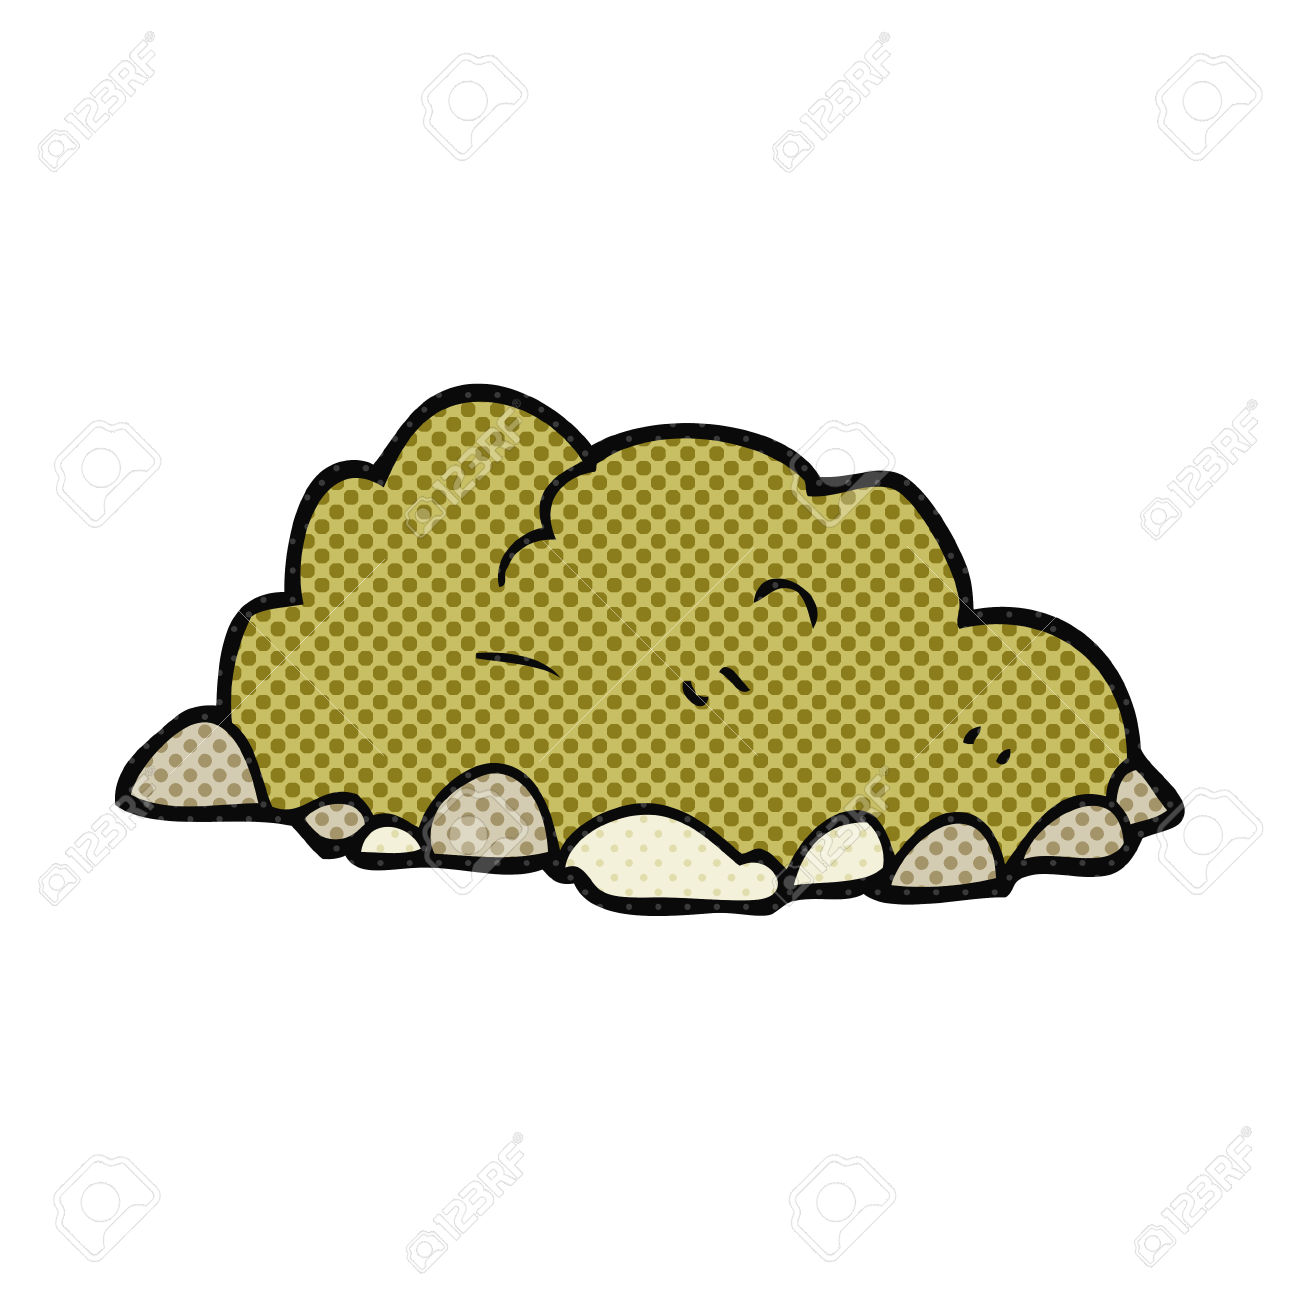 Freehand Drawn Cartoon Pile Of Dirt Royalty Free Cliparts, Vectors.